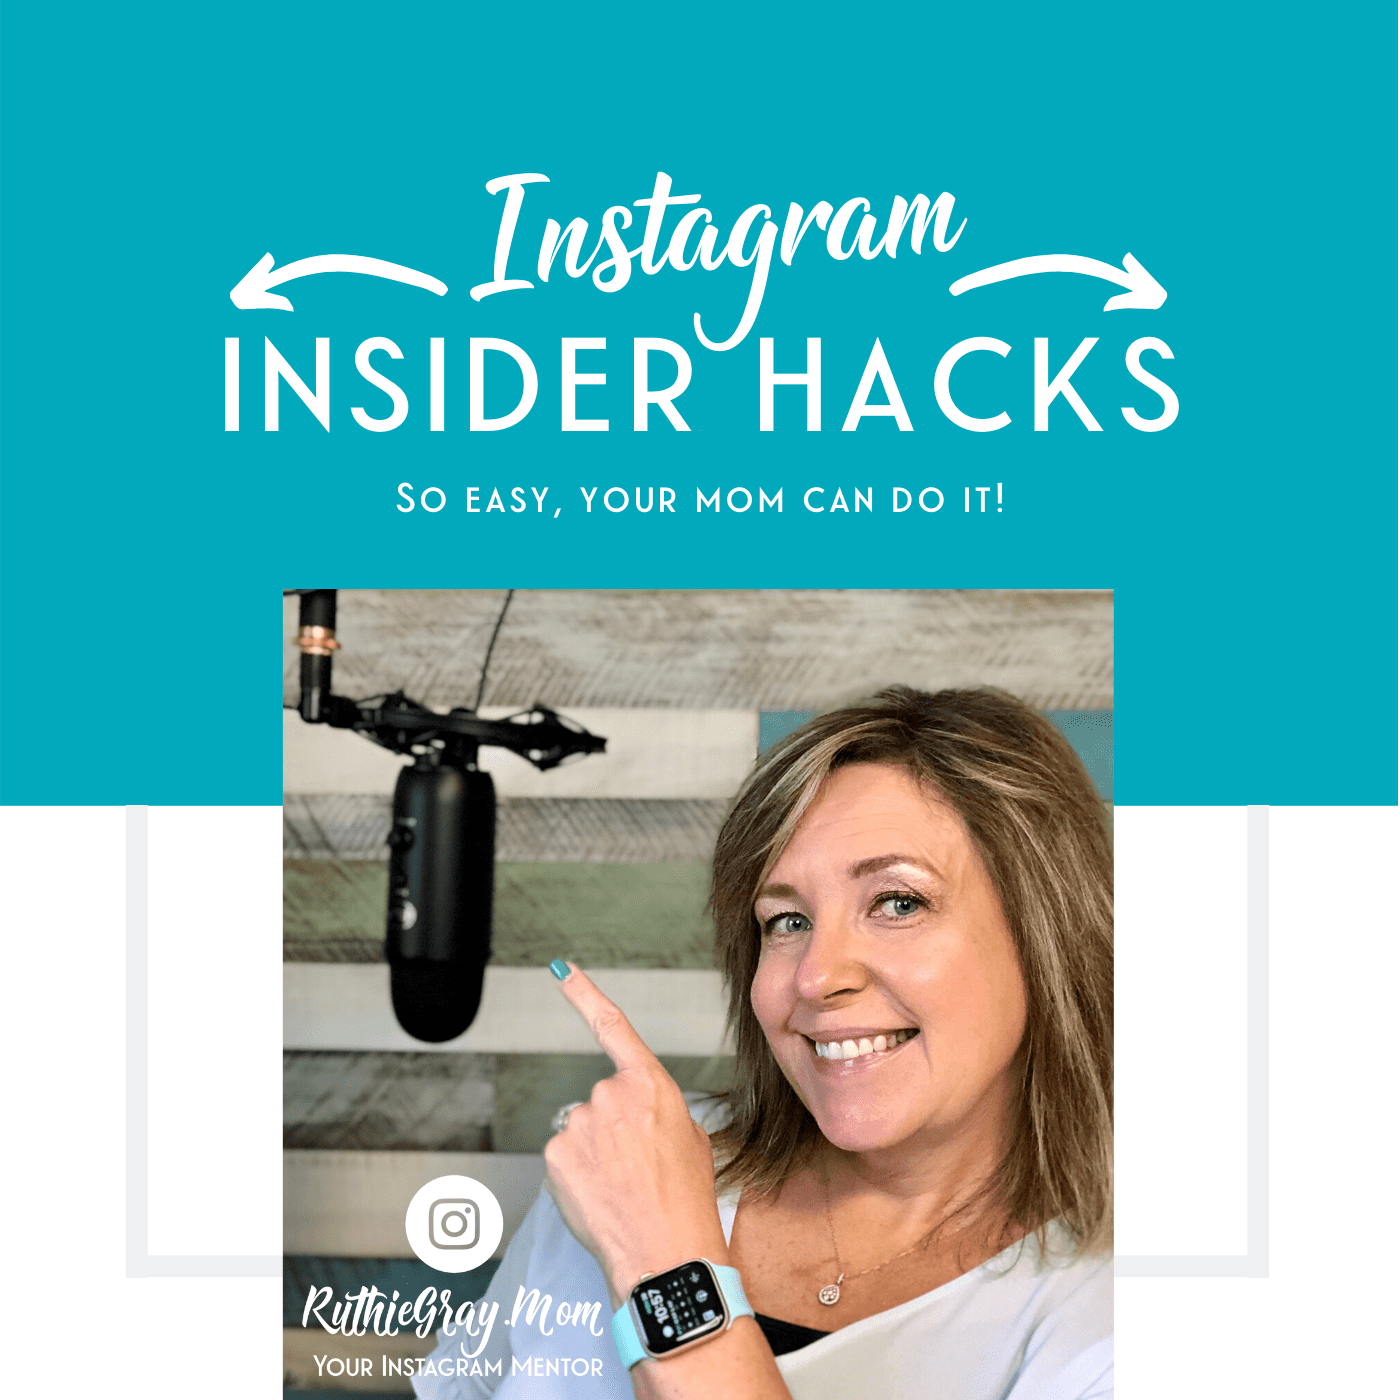 Instagram Insider Hacks